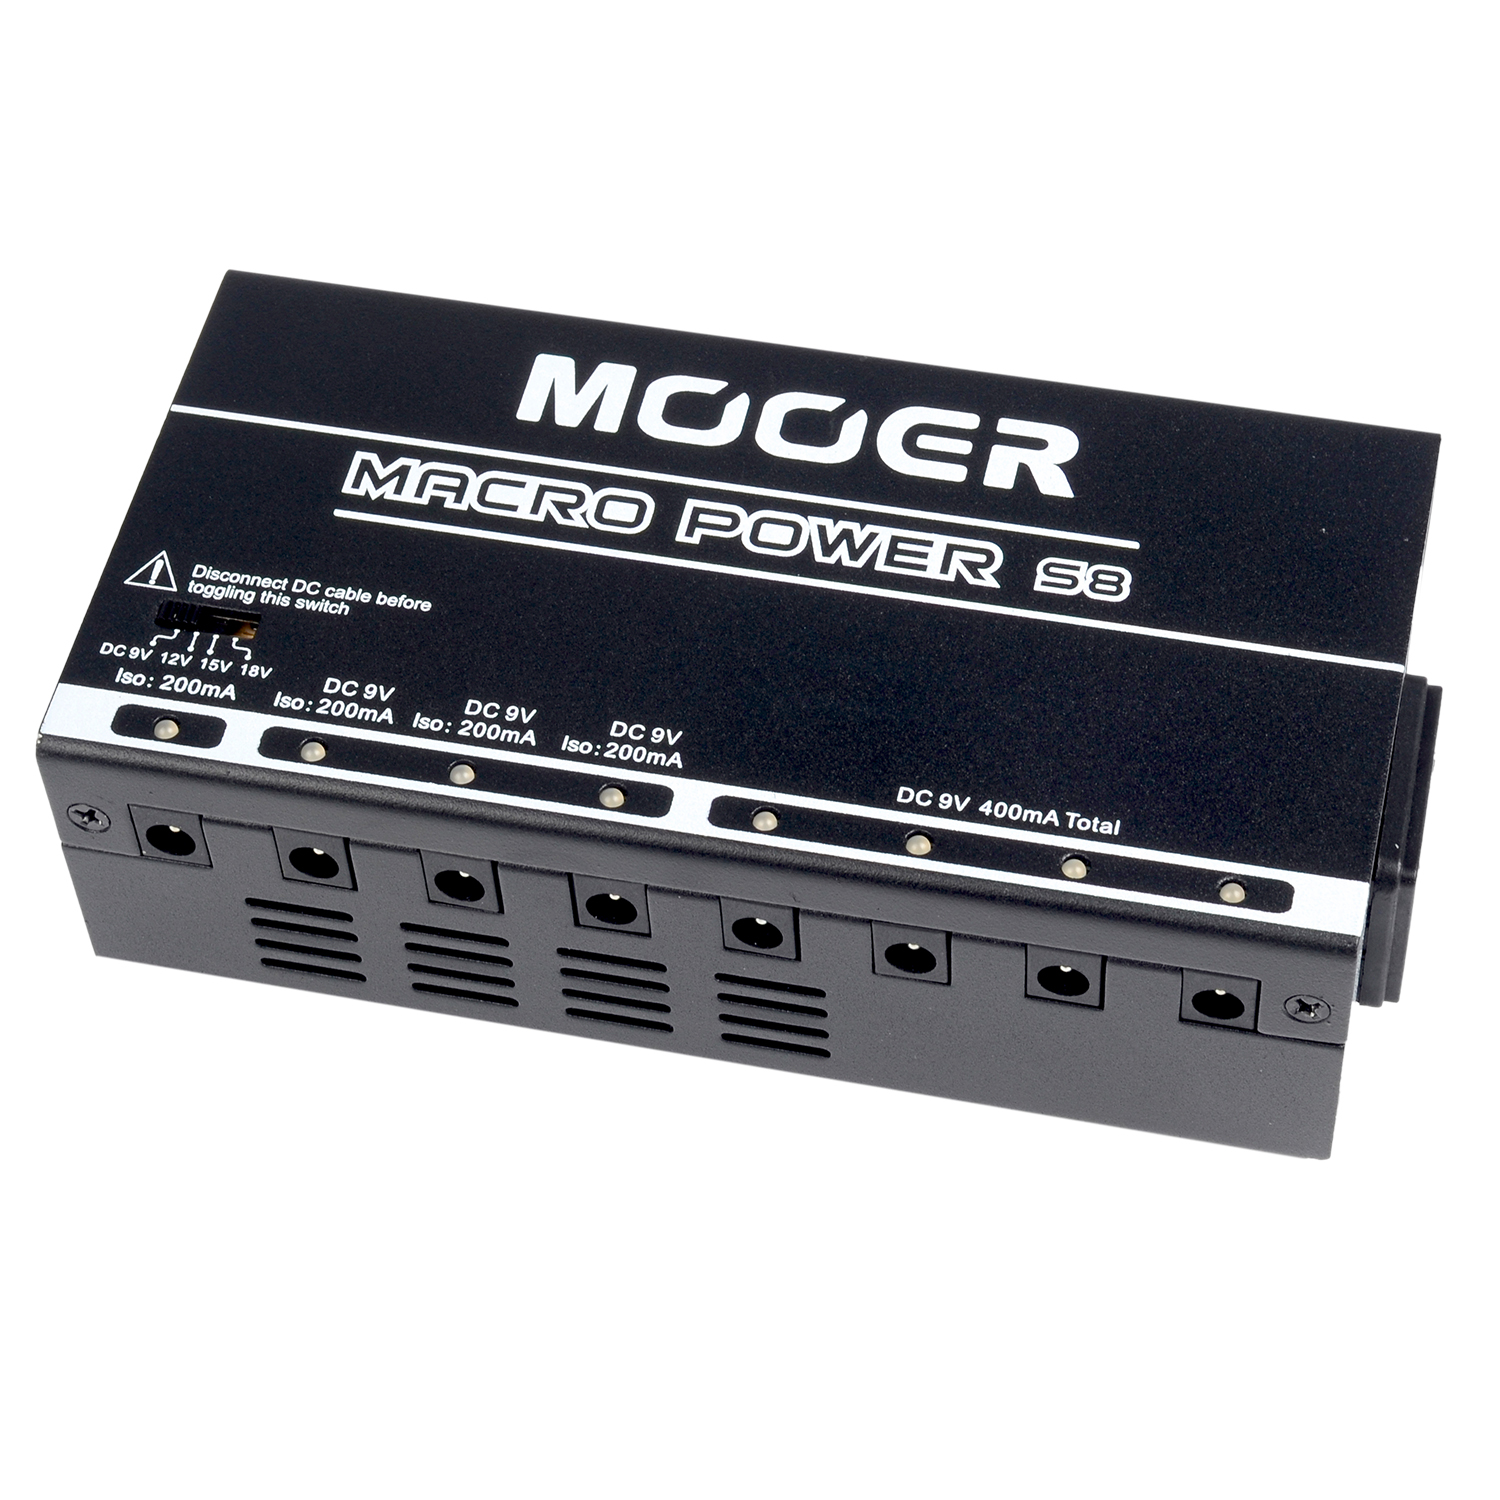 mooer s8 macro power supply for guitar effect pedal independent output power jacks 8 ports. Black Bedroom Furniture Sets. Home Design Ideas